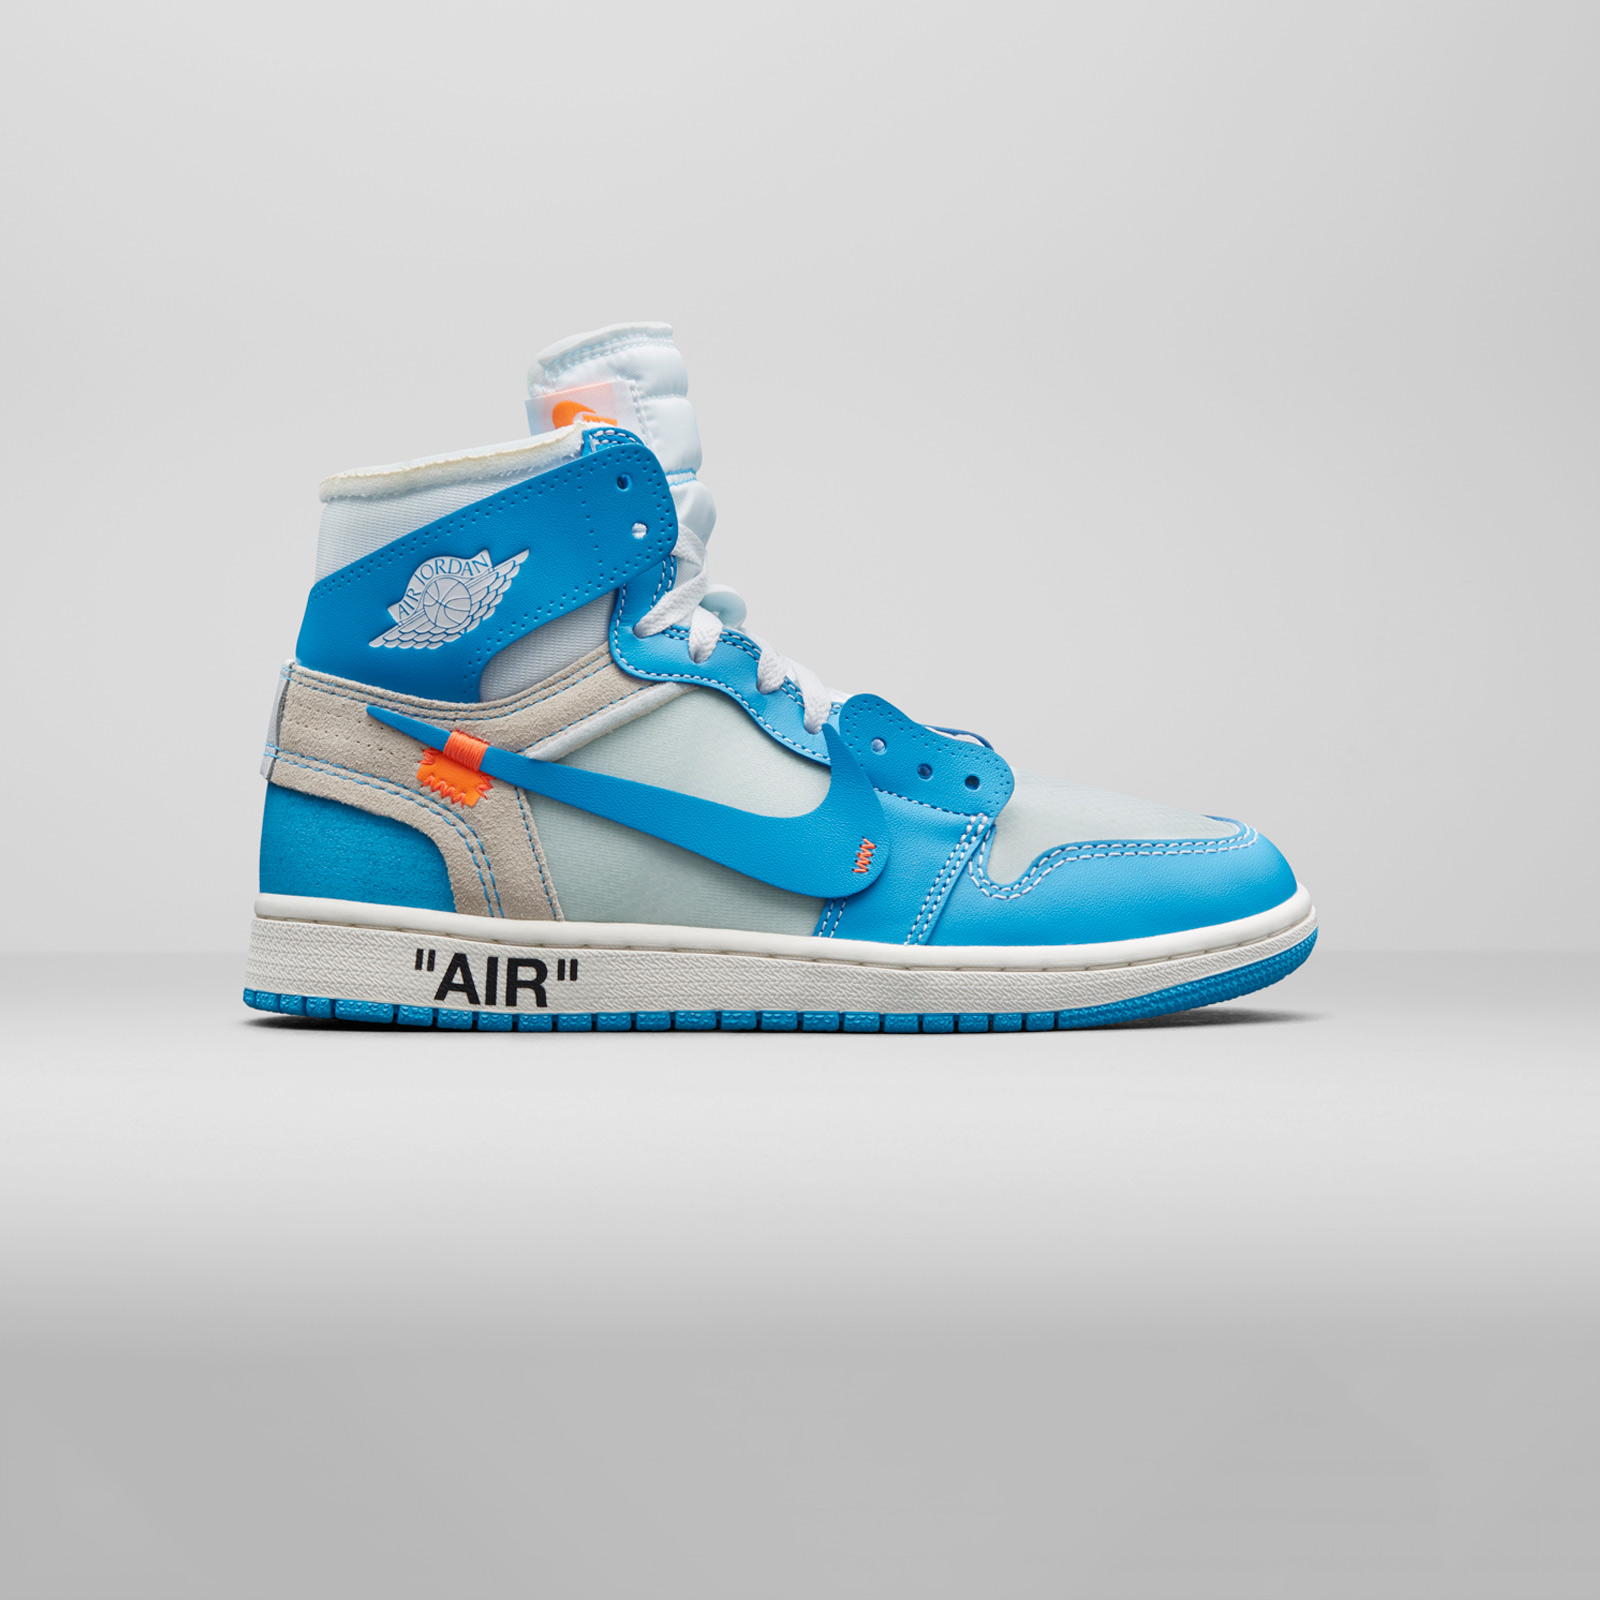 super popular 46ac7 f63d8 Jordan Brand Air Jordan 1 X Off-White NRG - Aq0818-148 ...